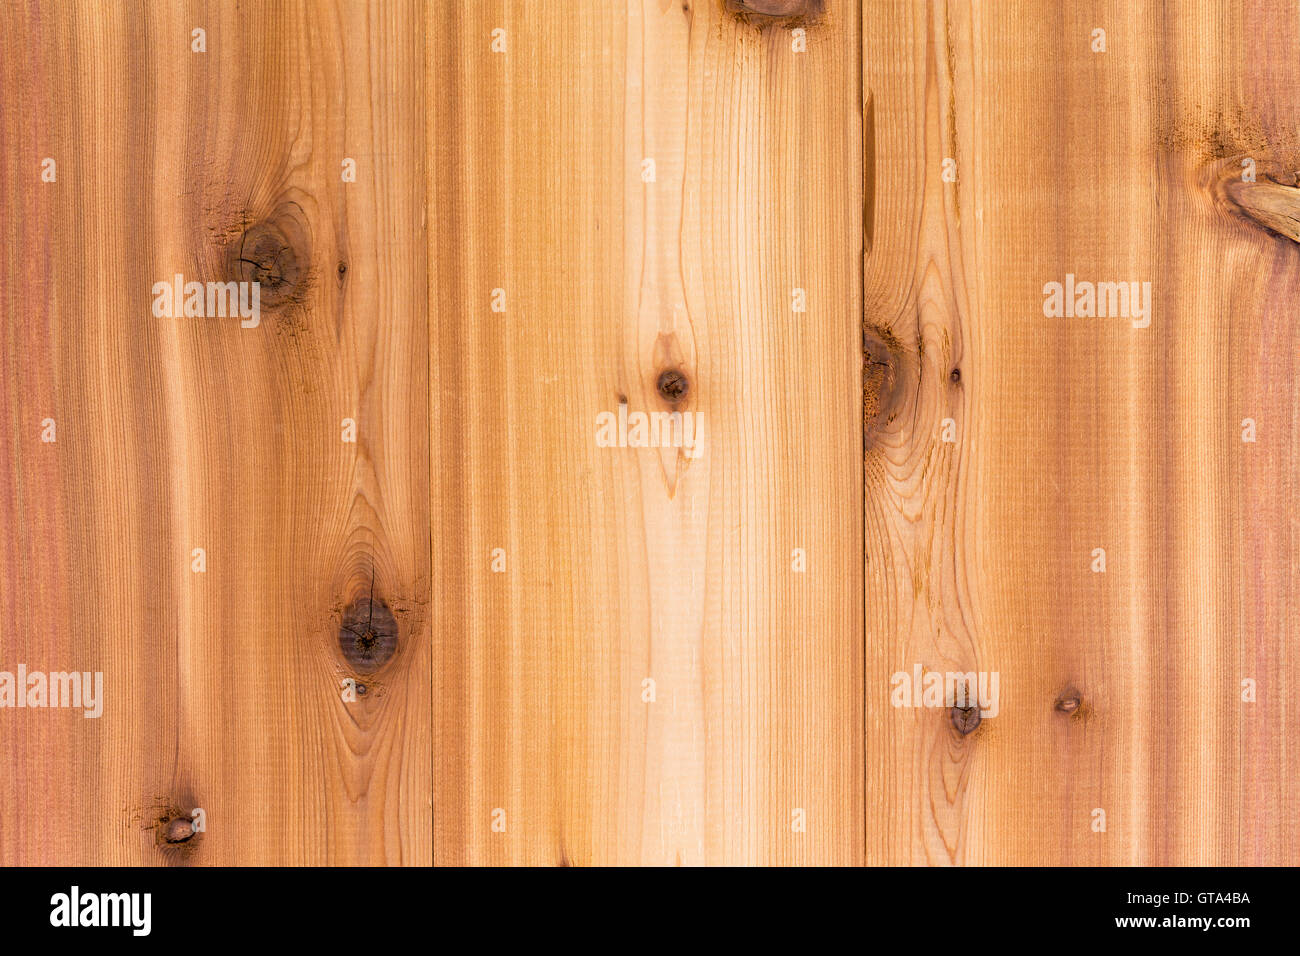 cedar wood background texture with vertical boards and a